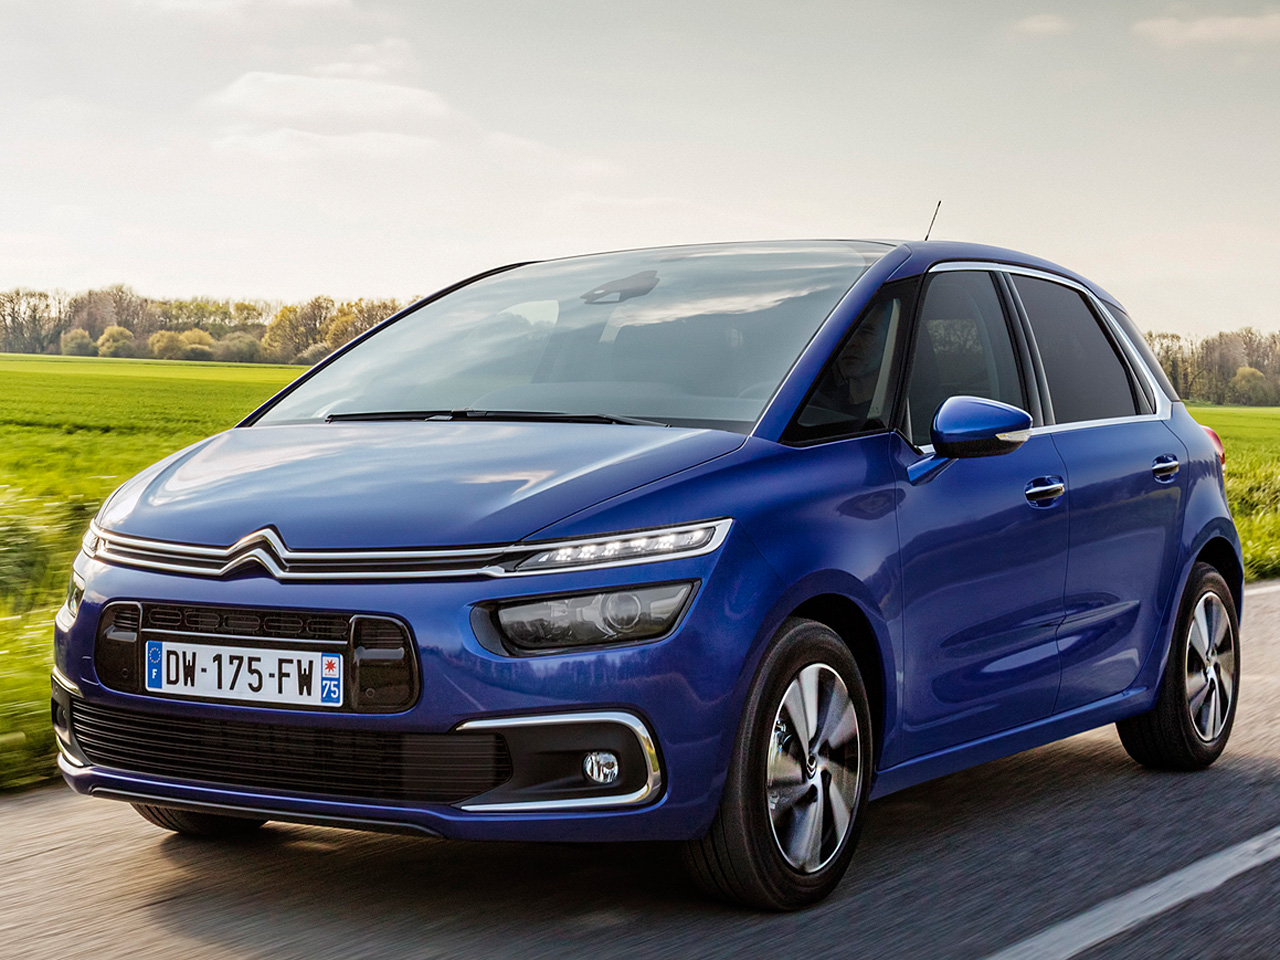 Citroen c4 picasso facelift 2016 preis autozeitungde for Cafissimo neues modell